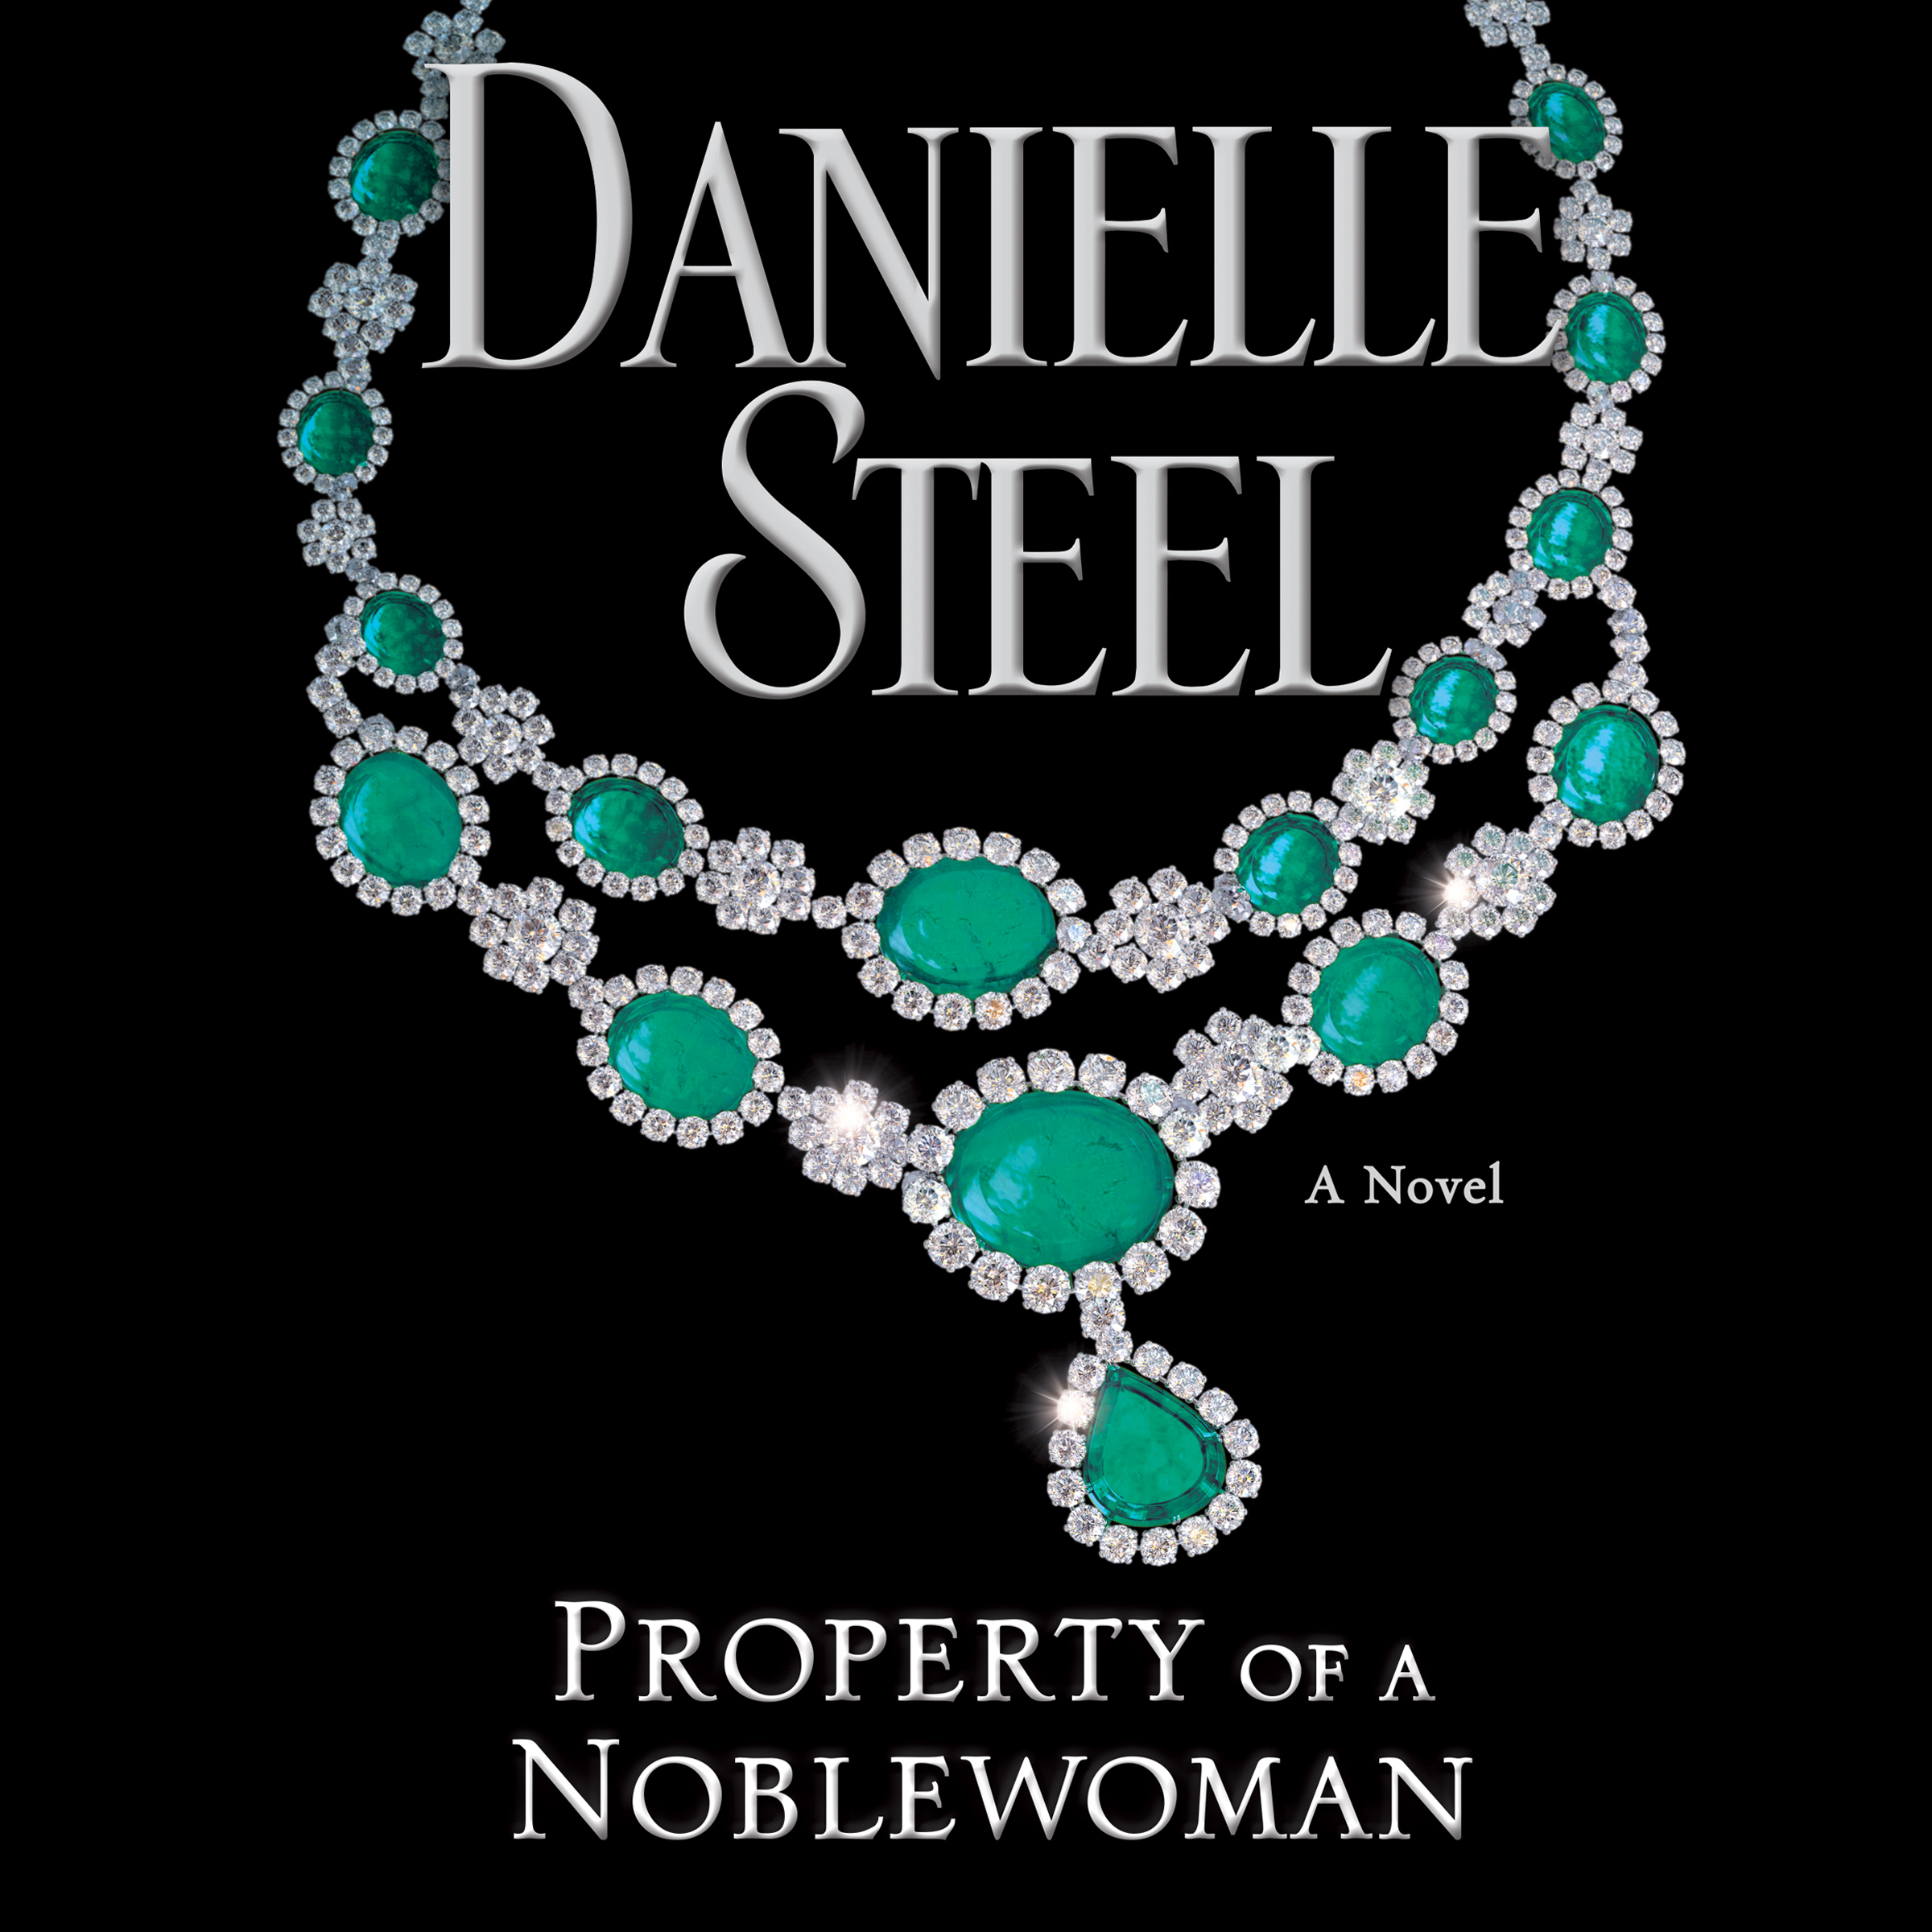 property-of-a-noblewoman-by-danielle-steel-romance-novels